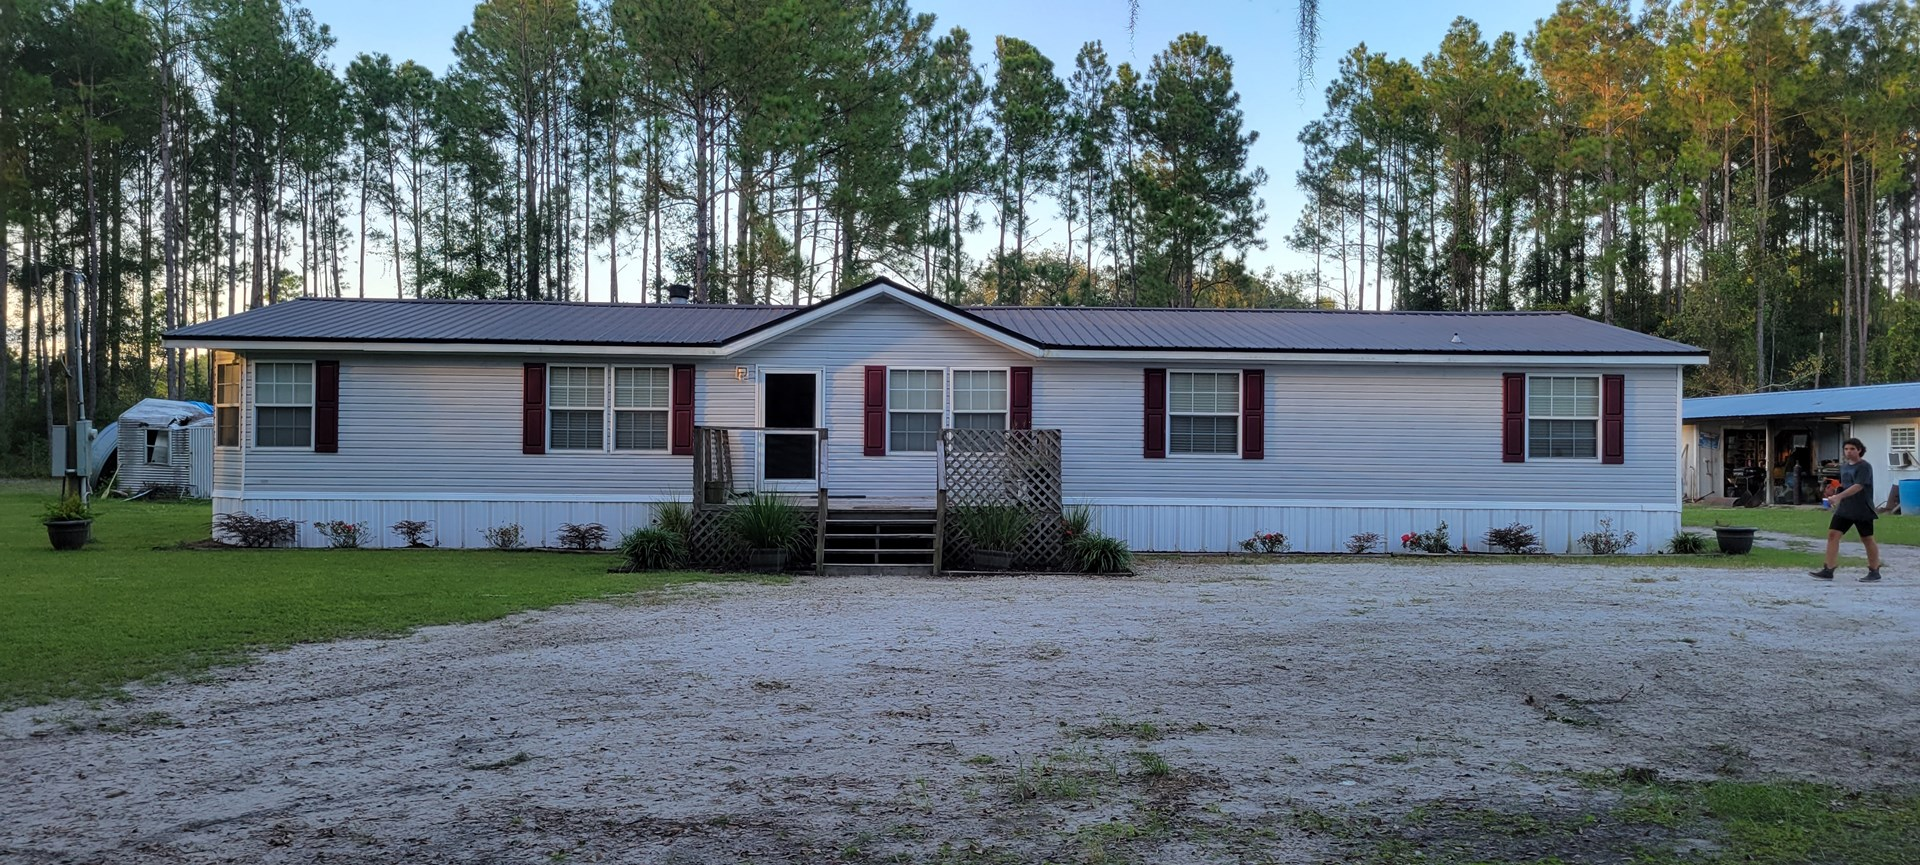 BEAUTIFUL 4/2 HOME ON 5 AC FOR ONLY $300,000.00